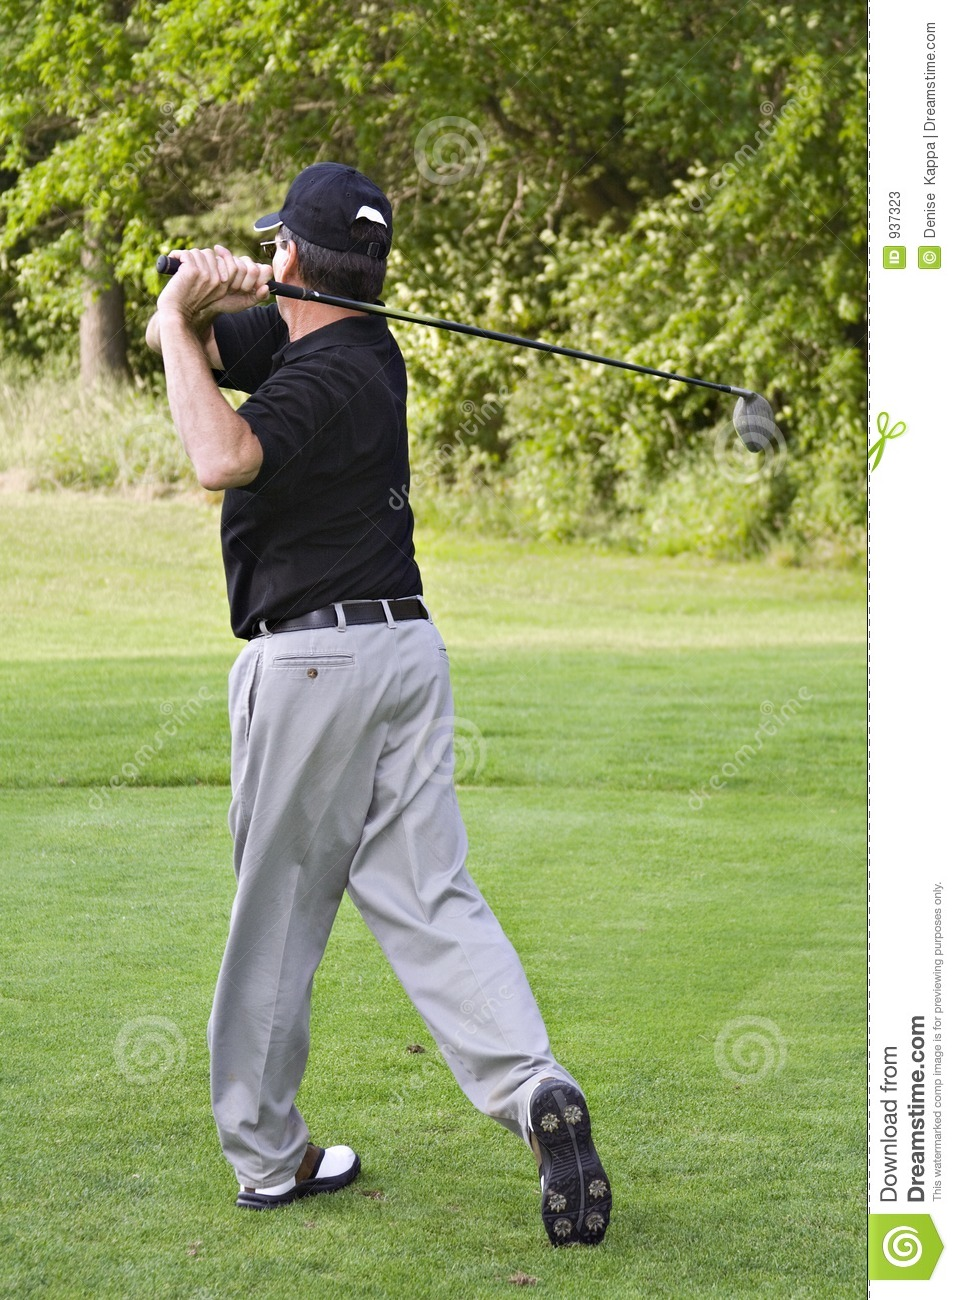 More similar stock images of ` Review Golf Swing `